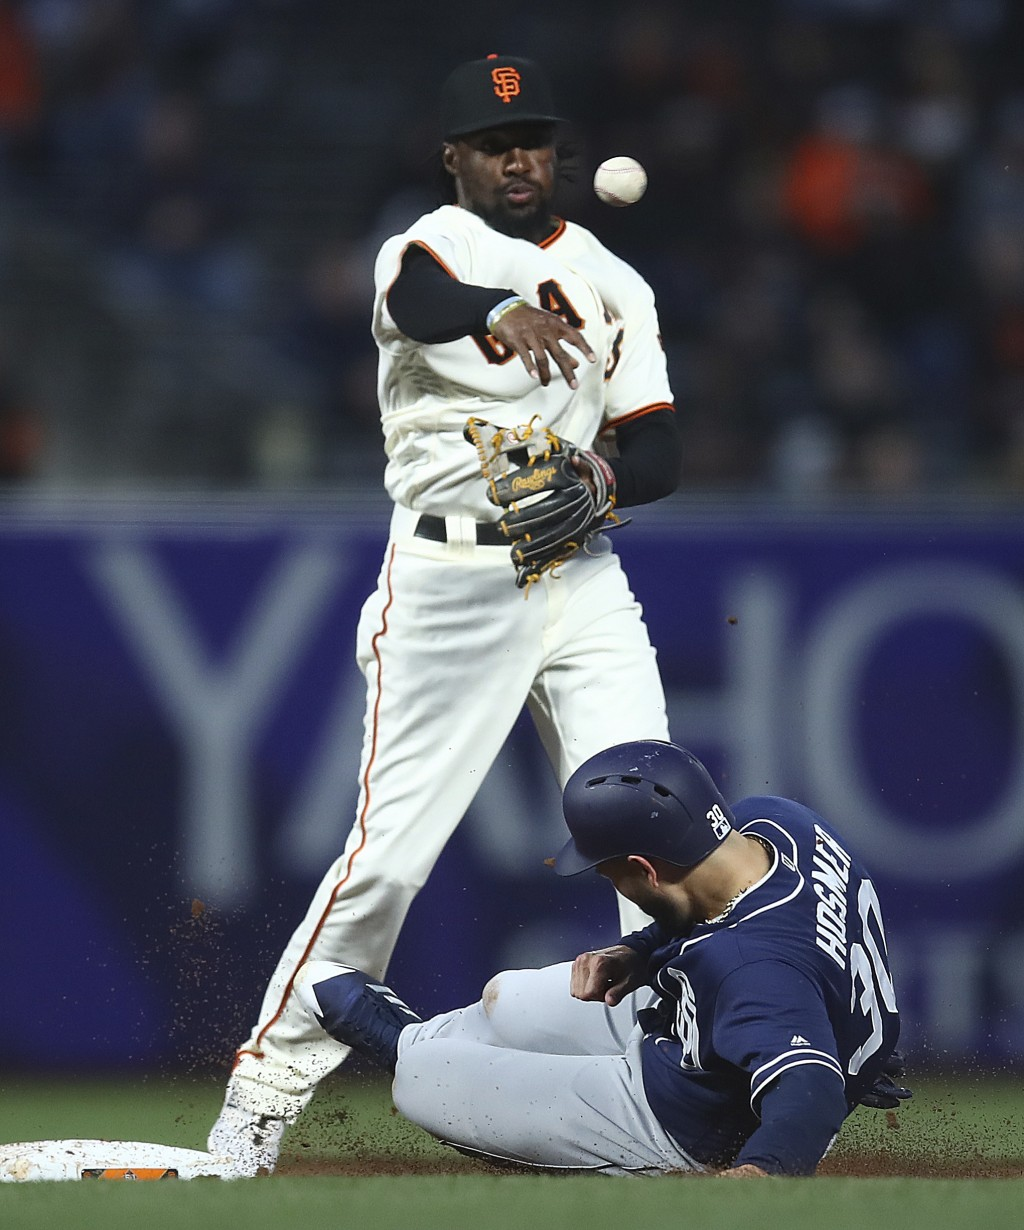 San Francisco Giants' Alen Hanson throws to first base over San Diego Padres' Eric Hosmer to complete a double play in the third inning of a baseball ...